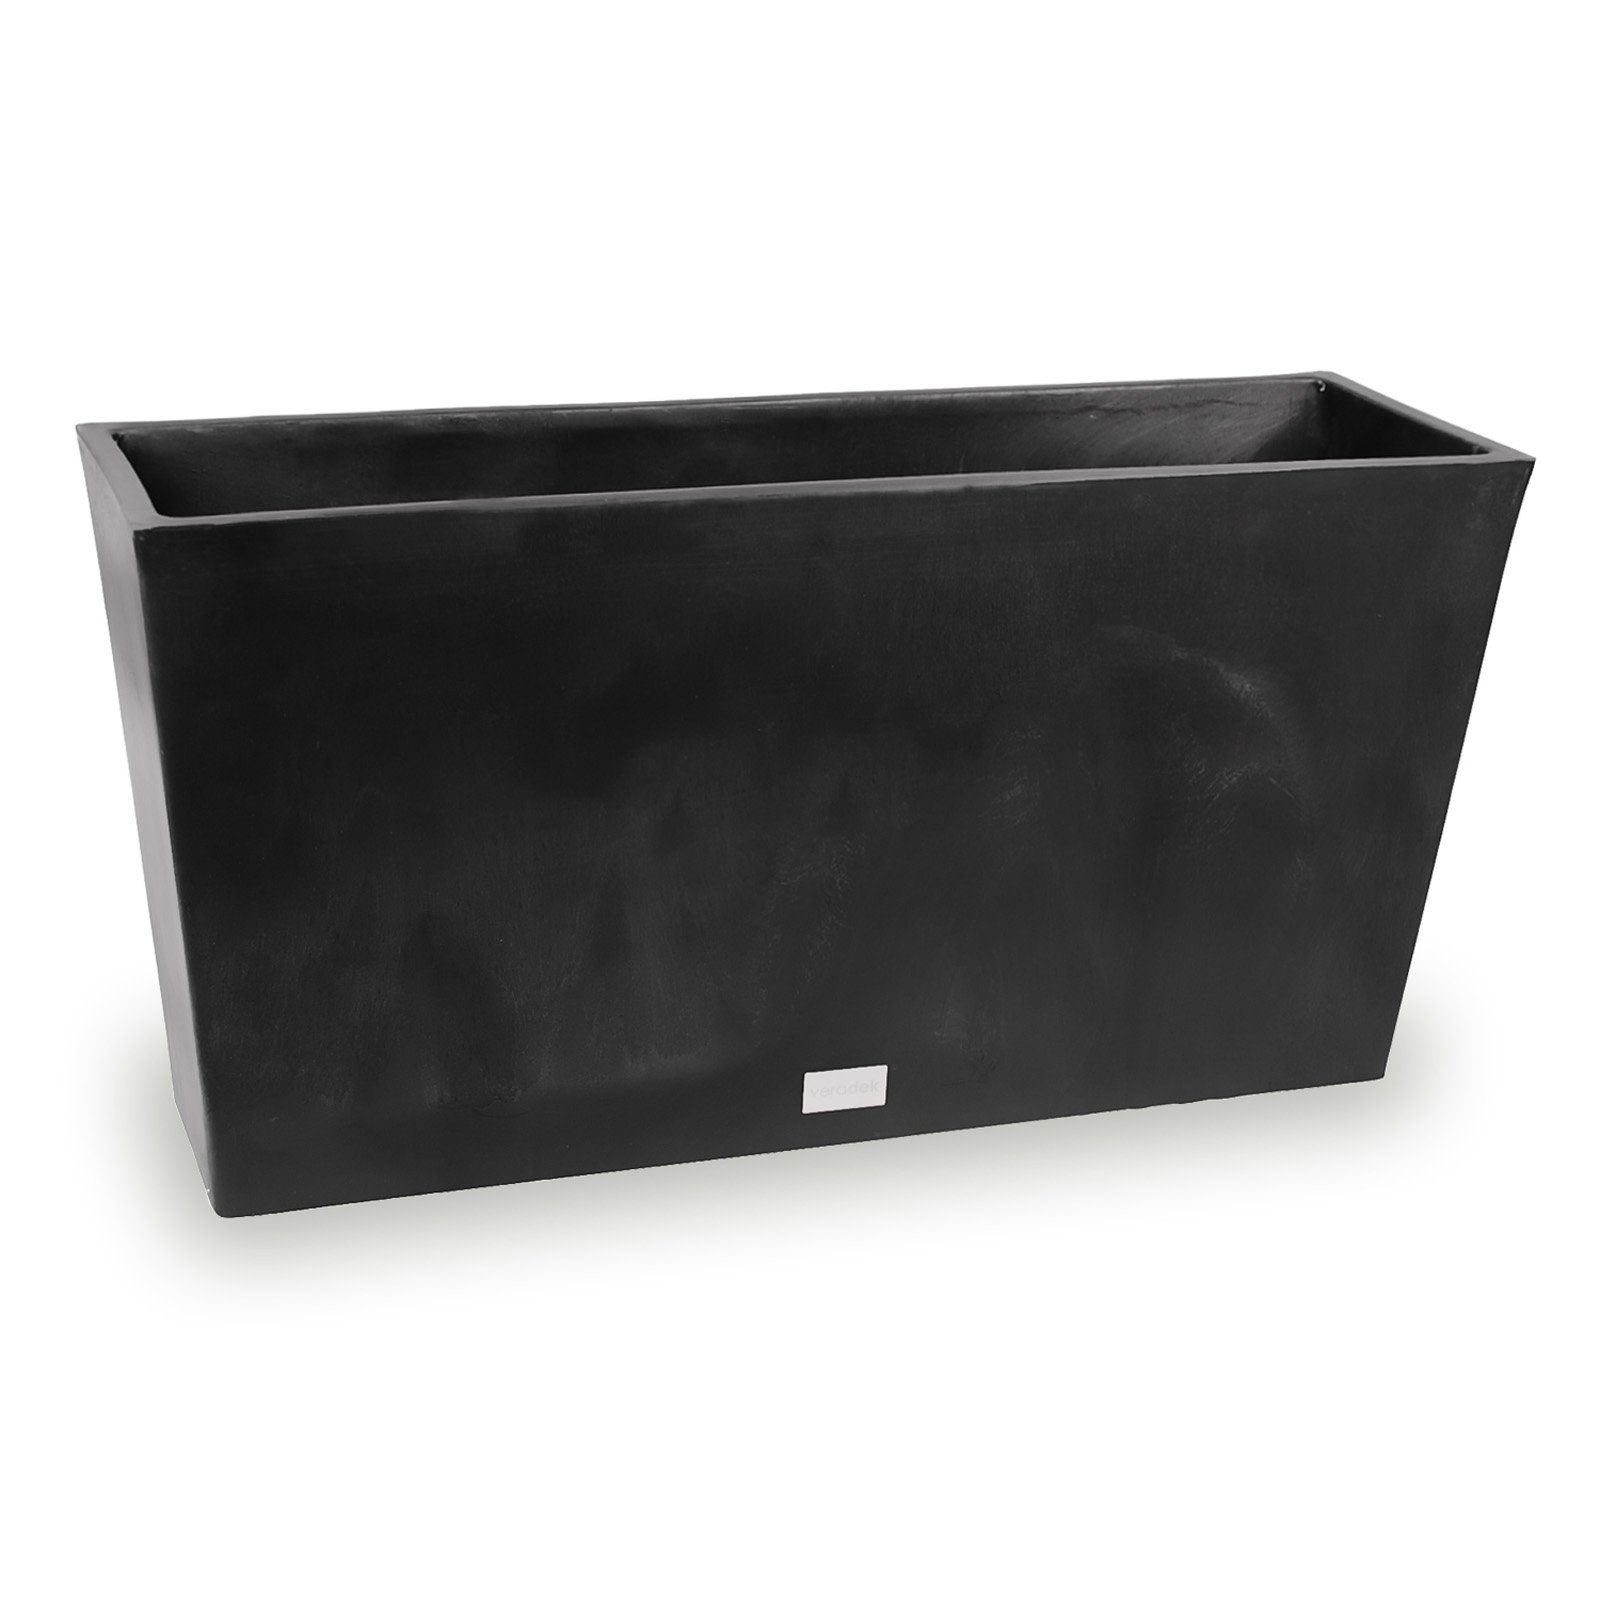 Veradek Midori Trough Planter Black 31 in. by Veradek Inc